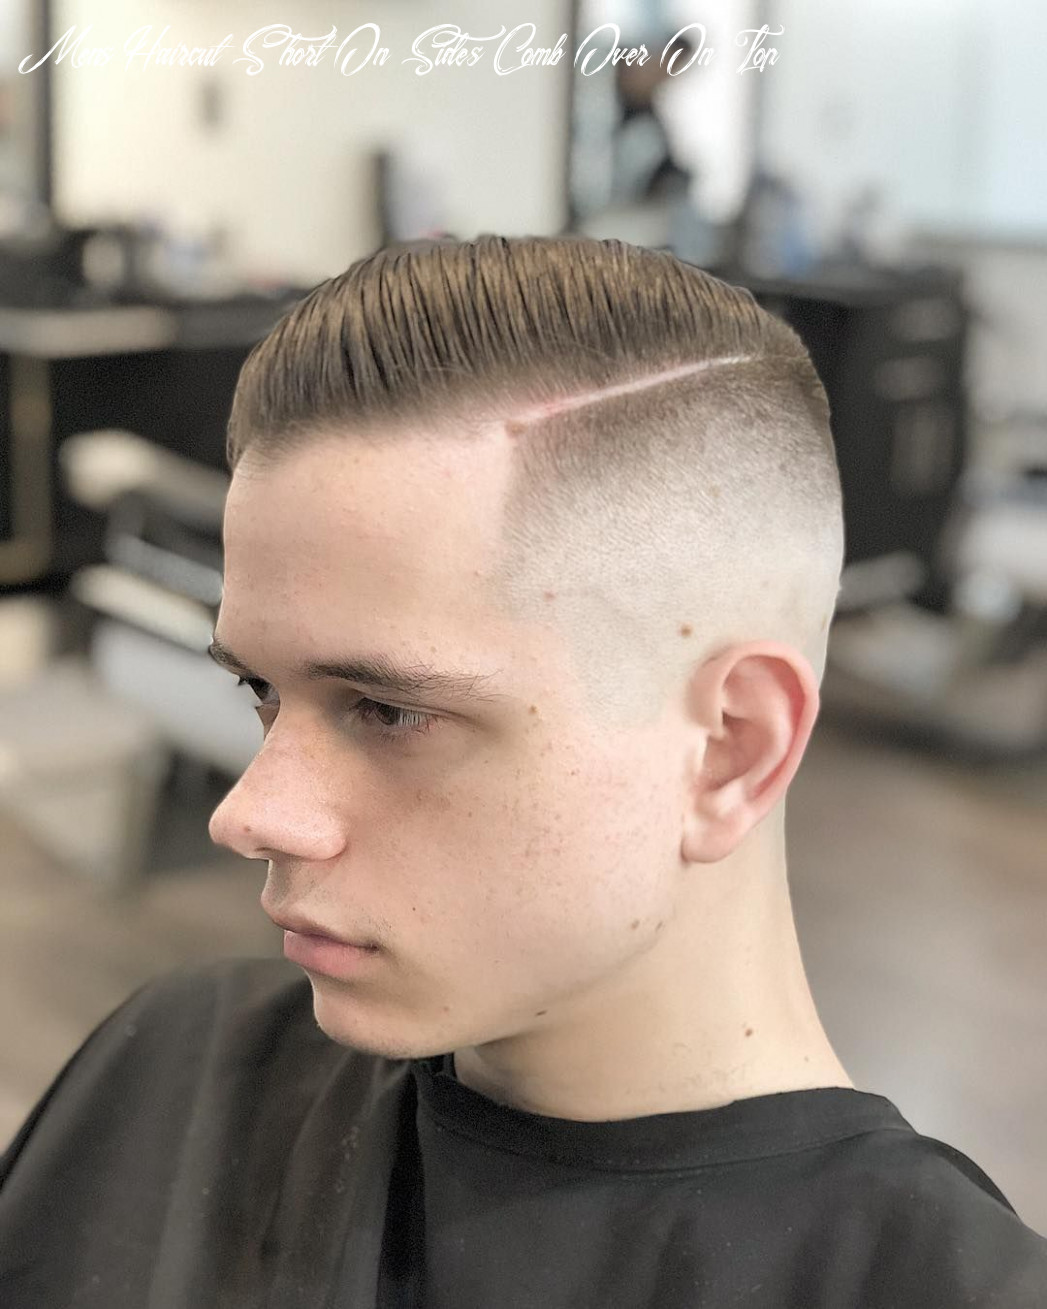 Pin on comb over hairstyles mens haircut short on sides comb over on top